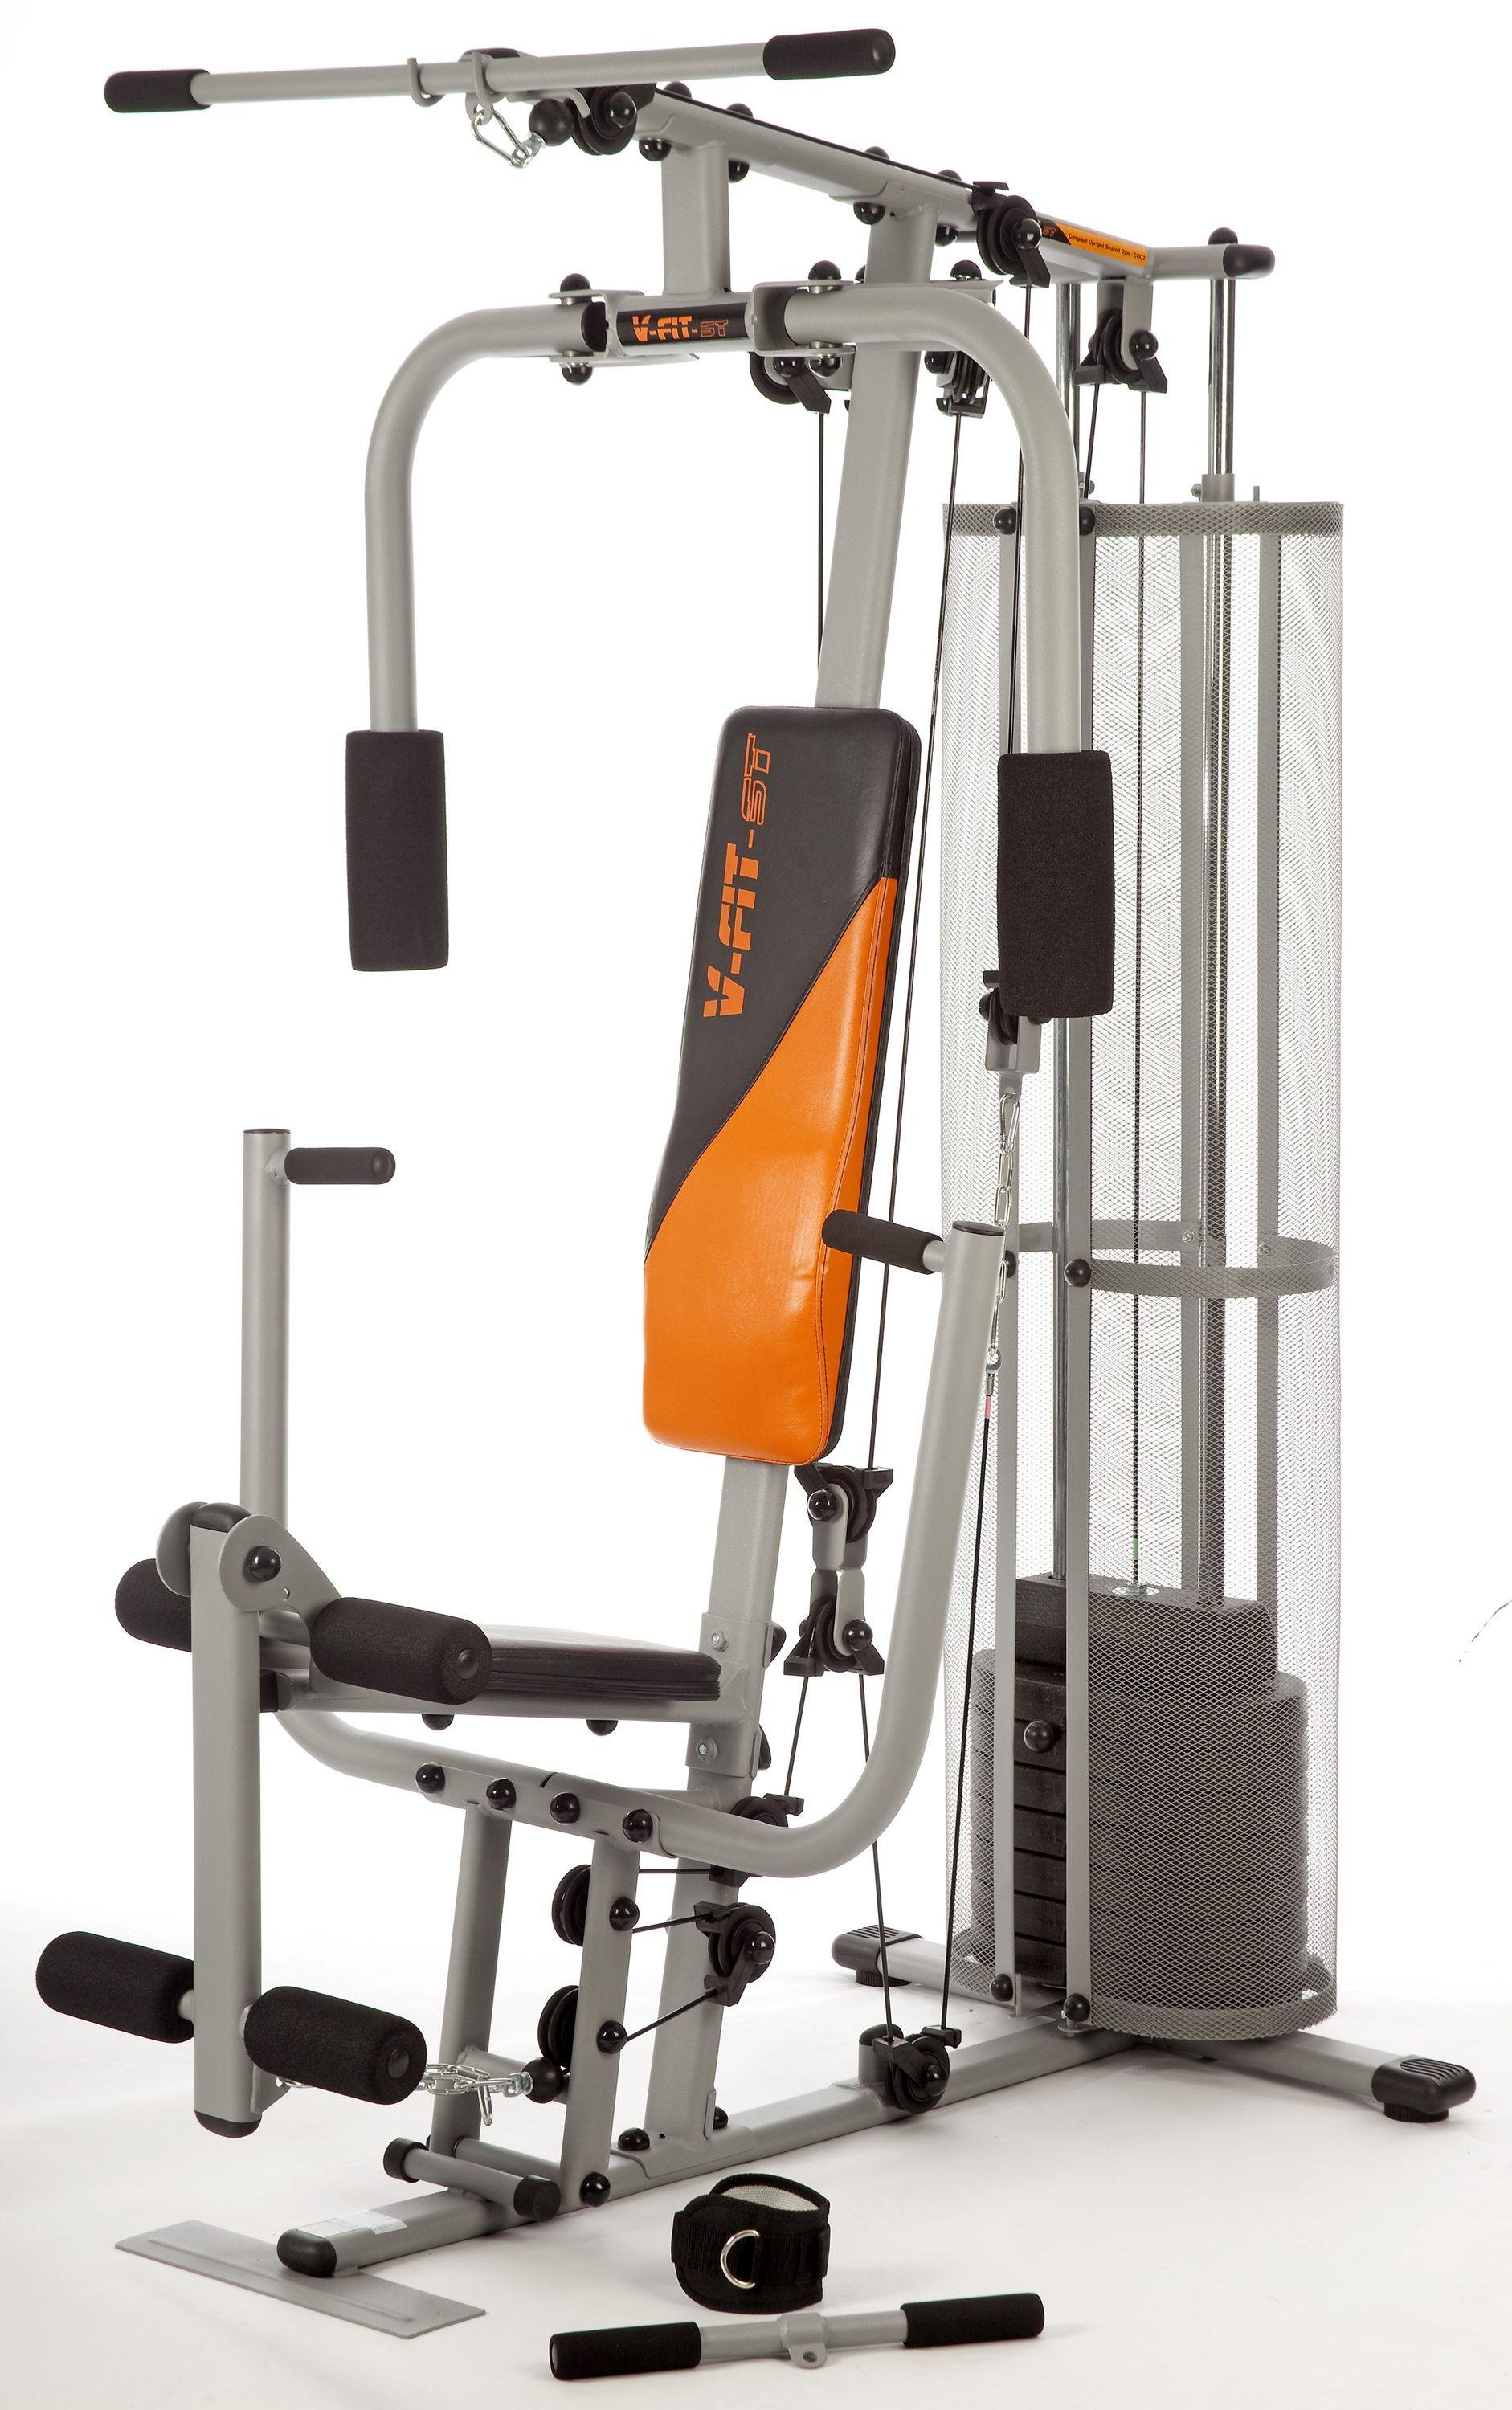 V fit cug herculean compact upright home gym